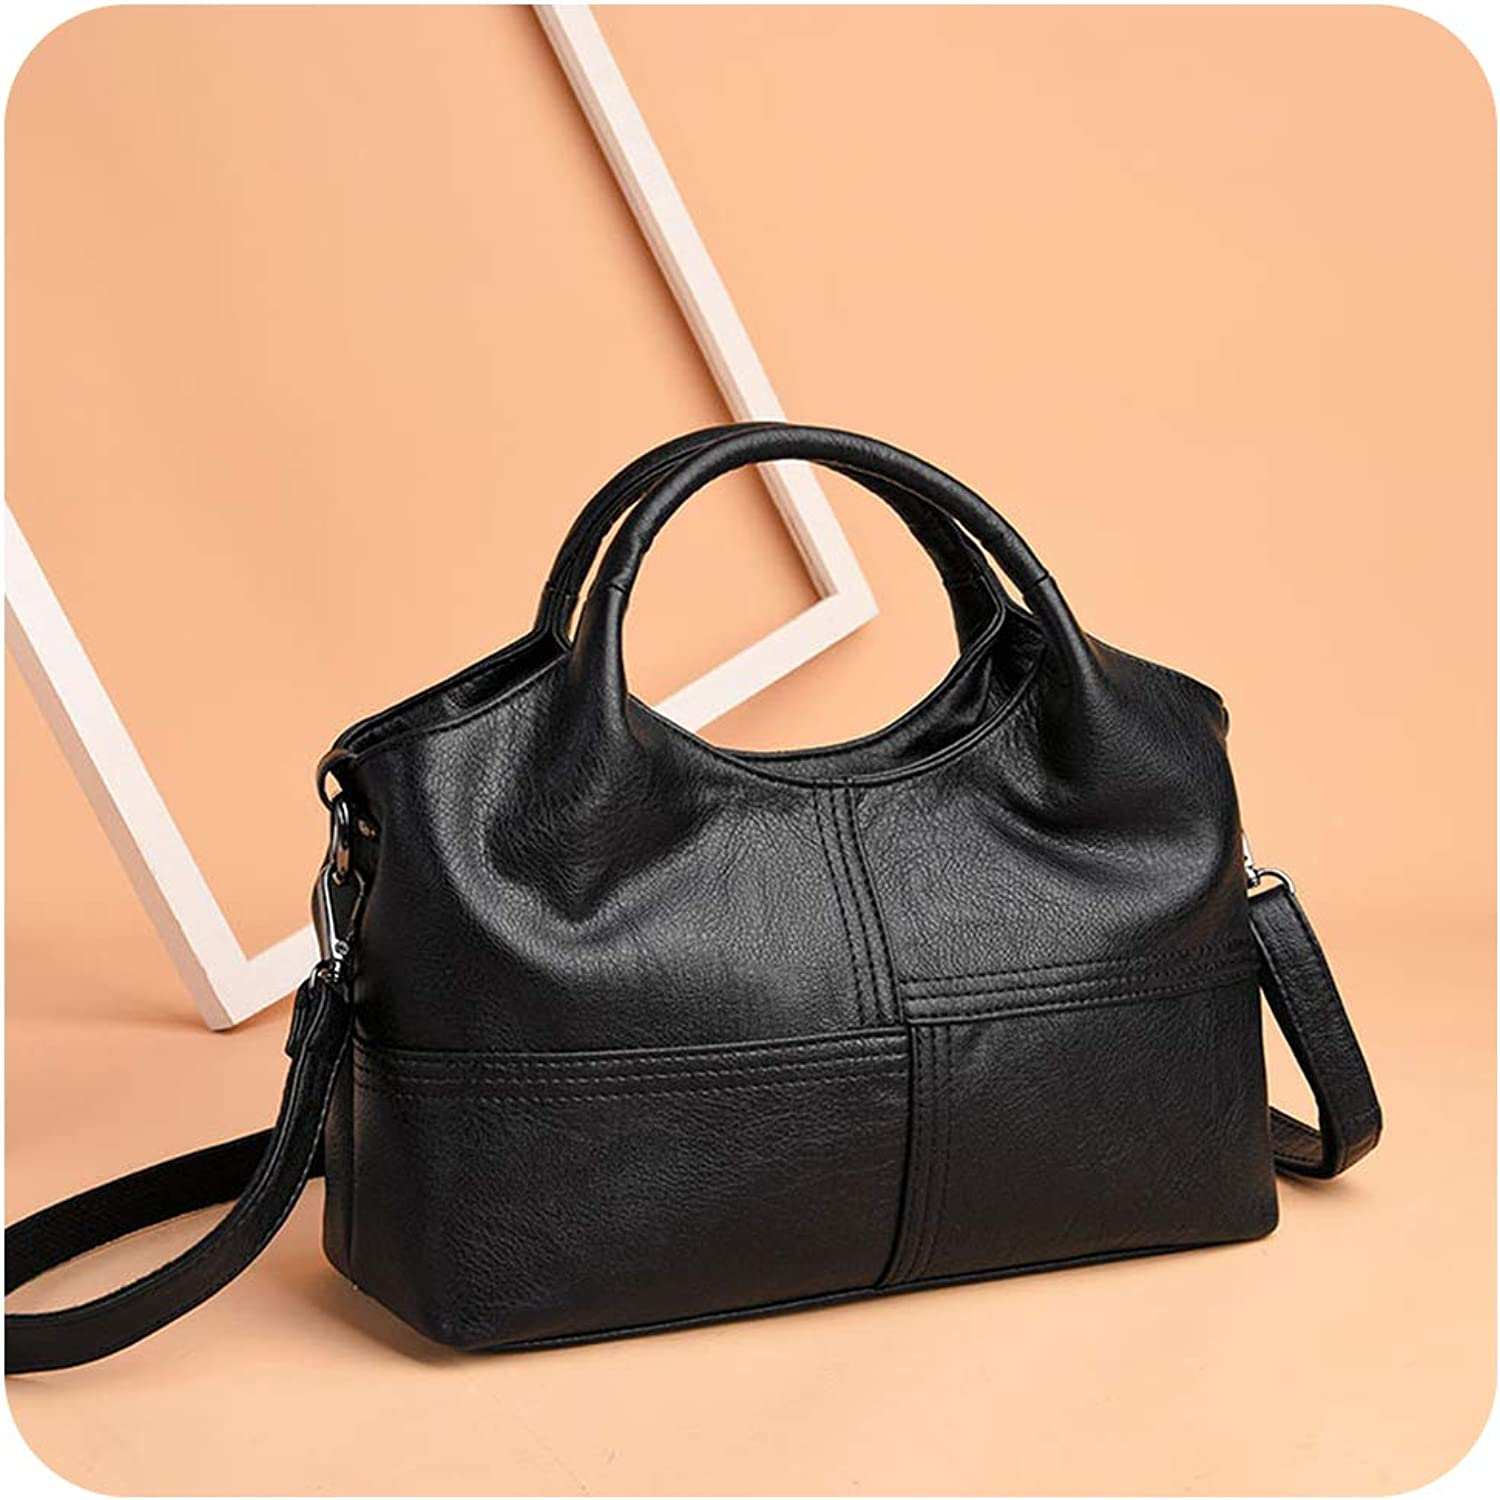 Leather Bags Lady Patchwork Shoulder Crossbody Bags For Women Handbags Tote Bag Women Messenger Bags